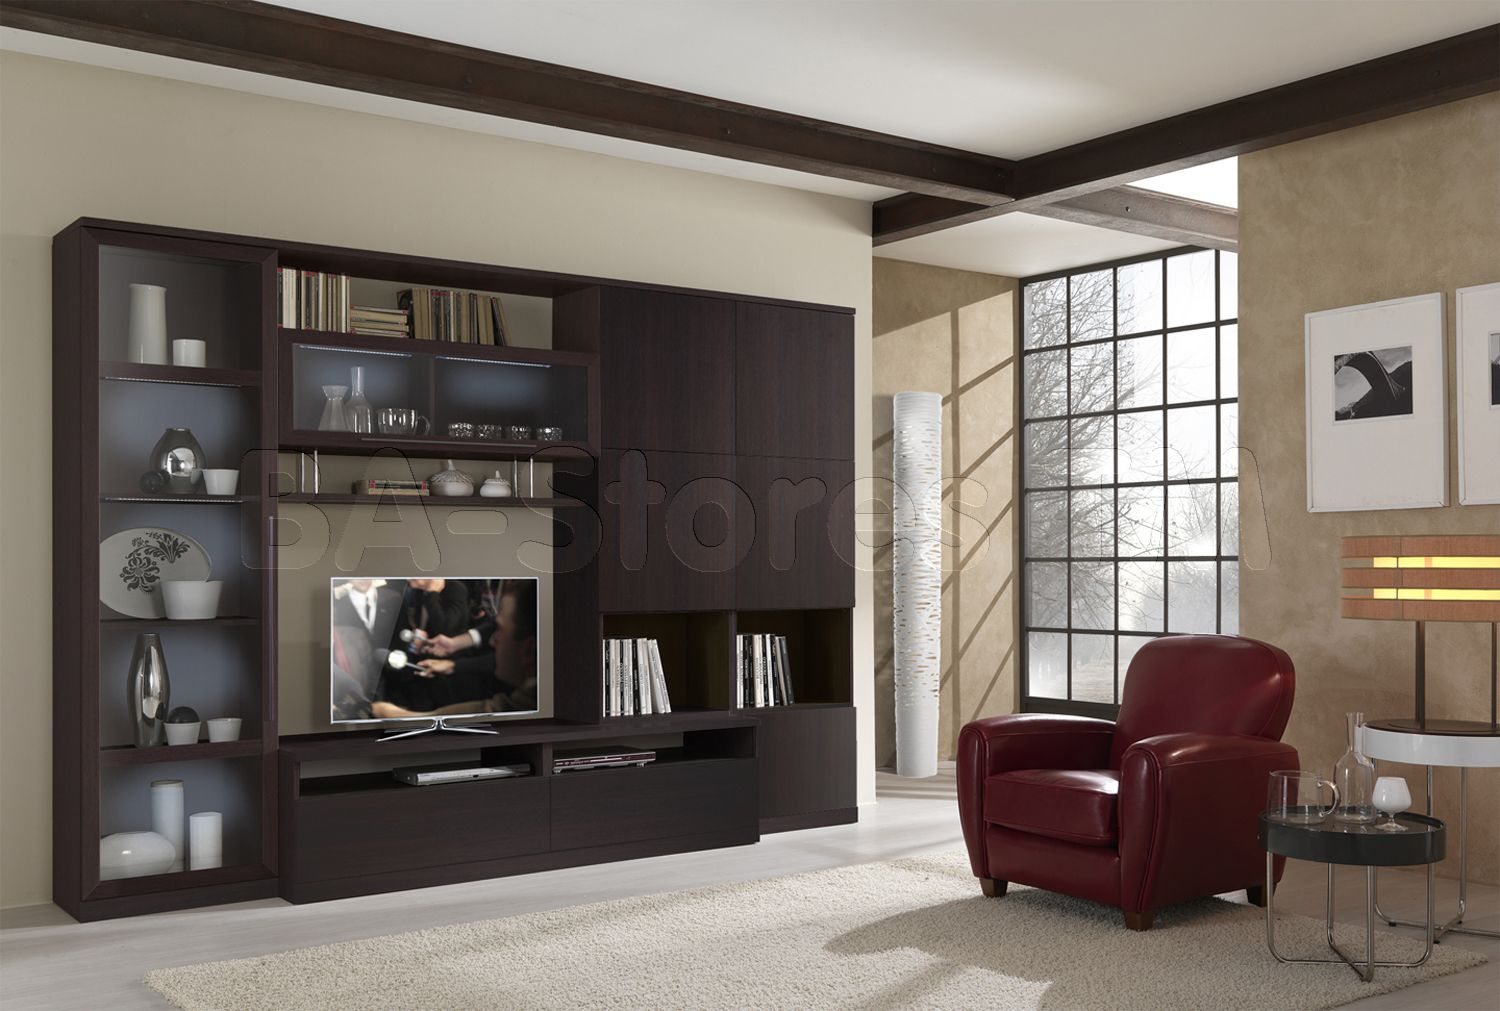 ST3000 Wall Unit In Wenge By ESF Furniture